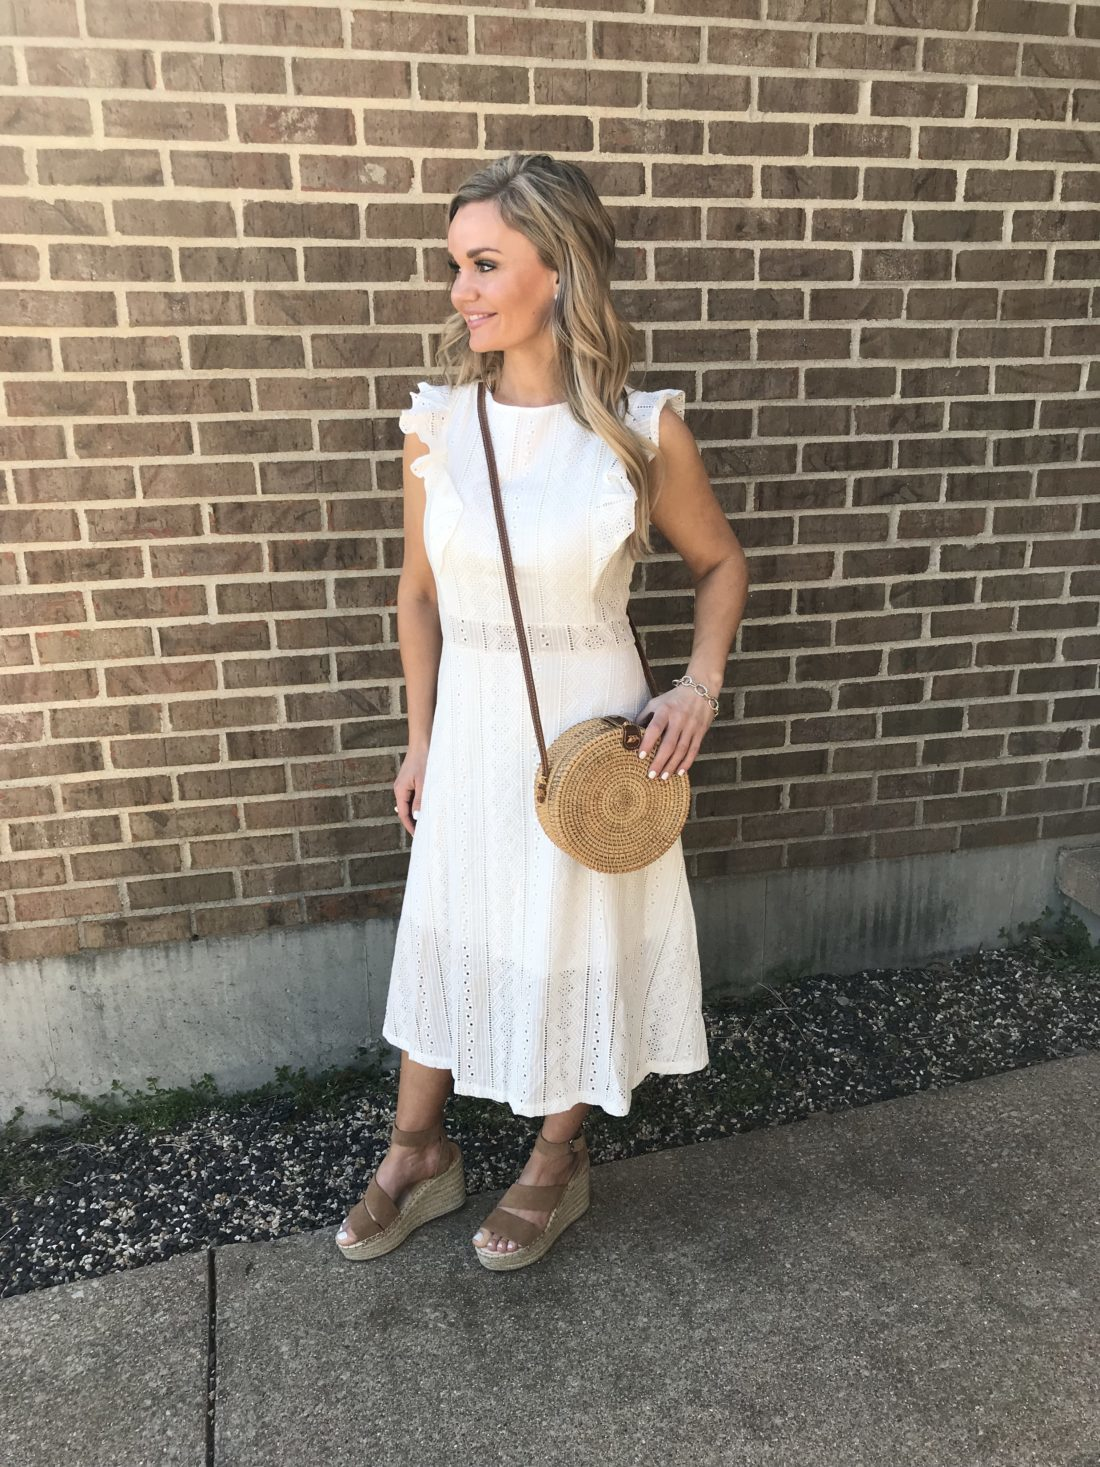 White Eyelet Dress Summer Outfit Ideas